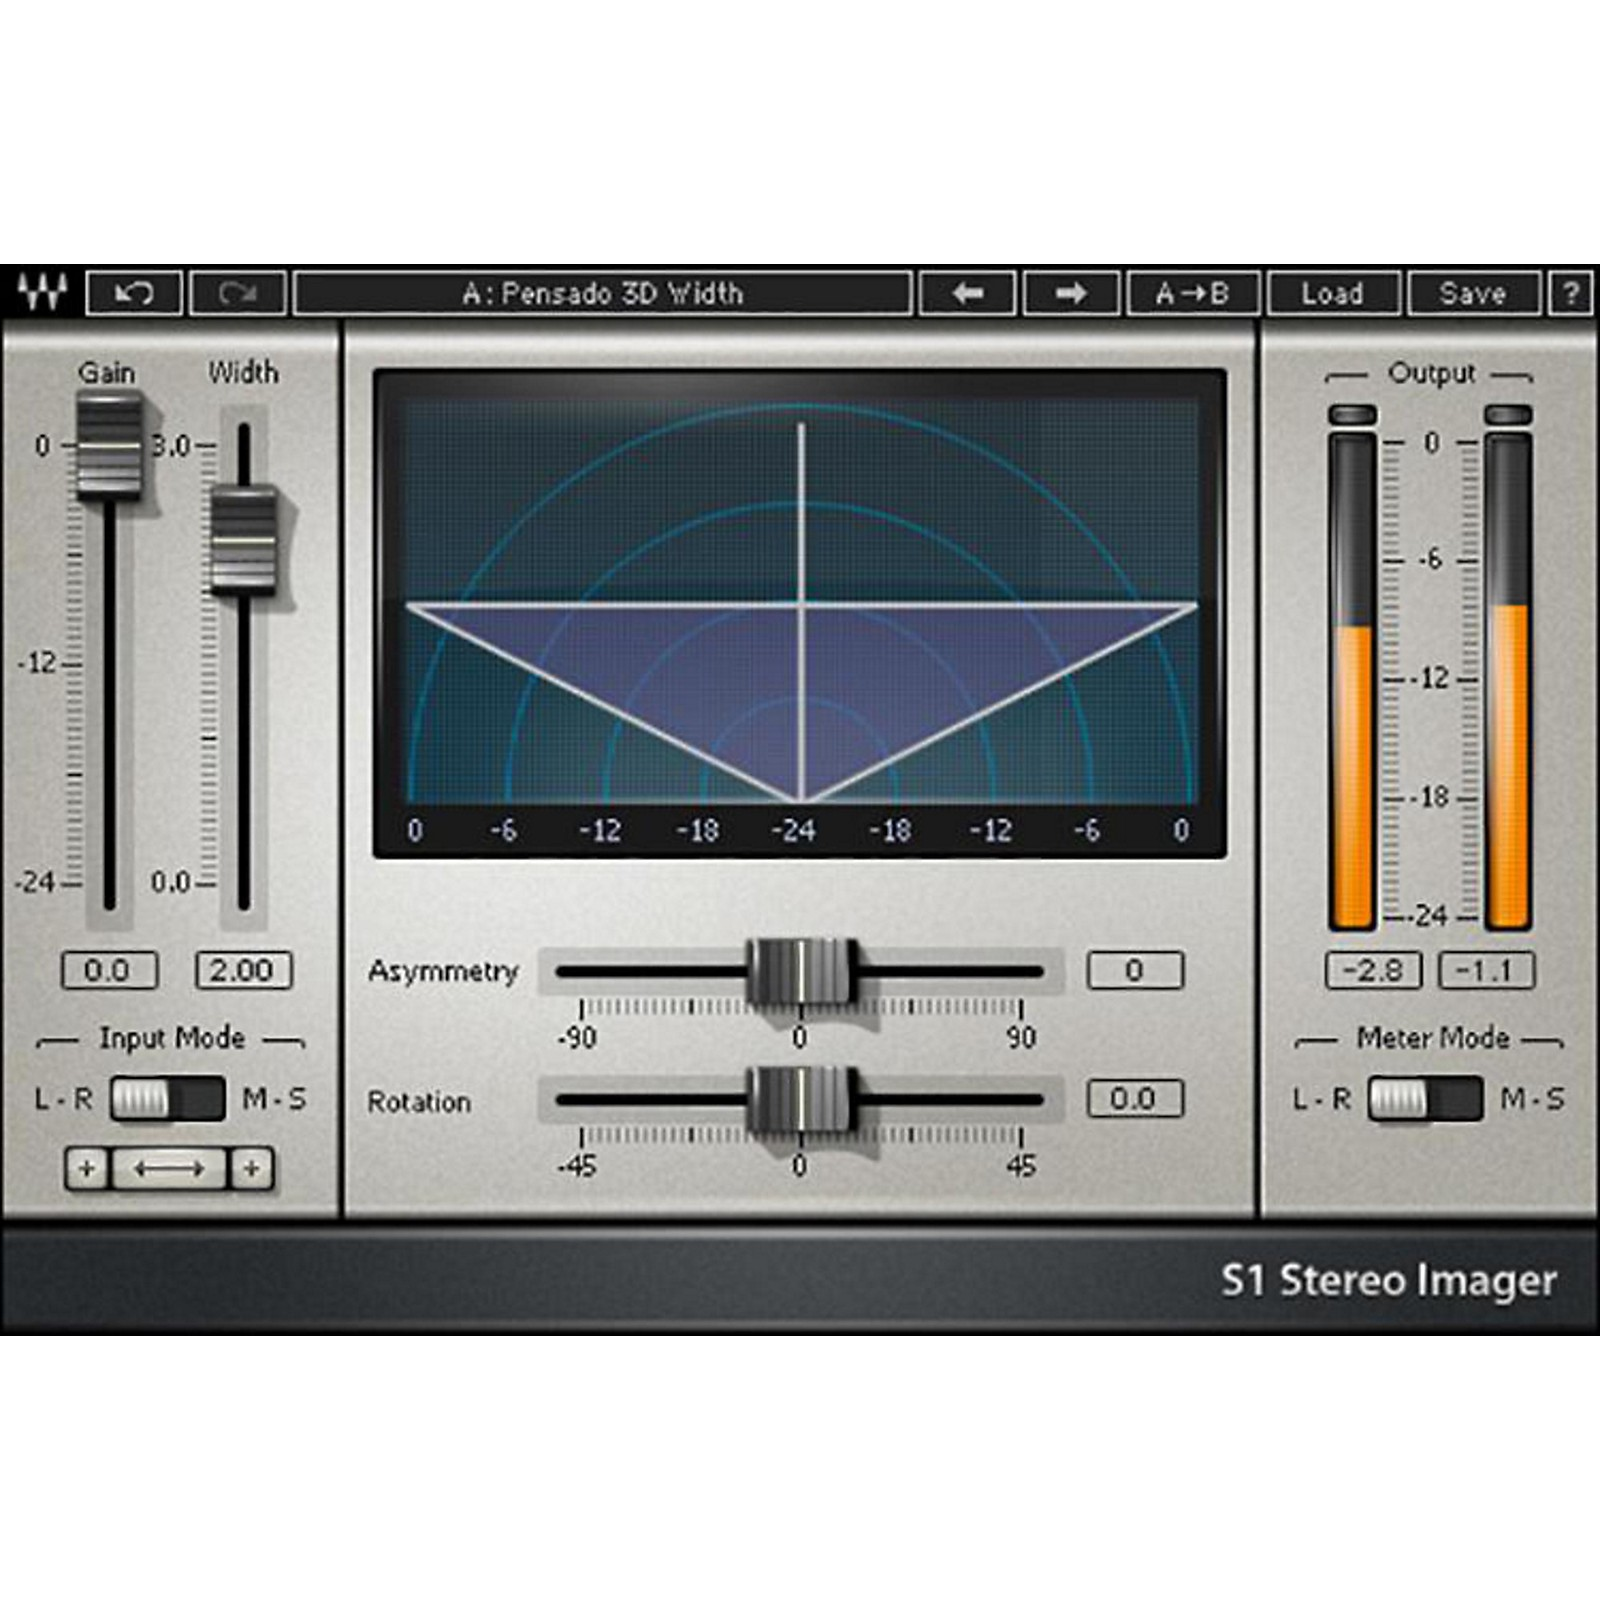 s1 stereo imager vst free download